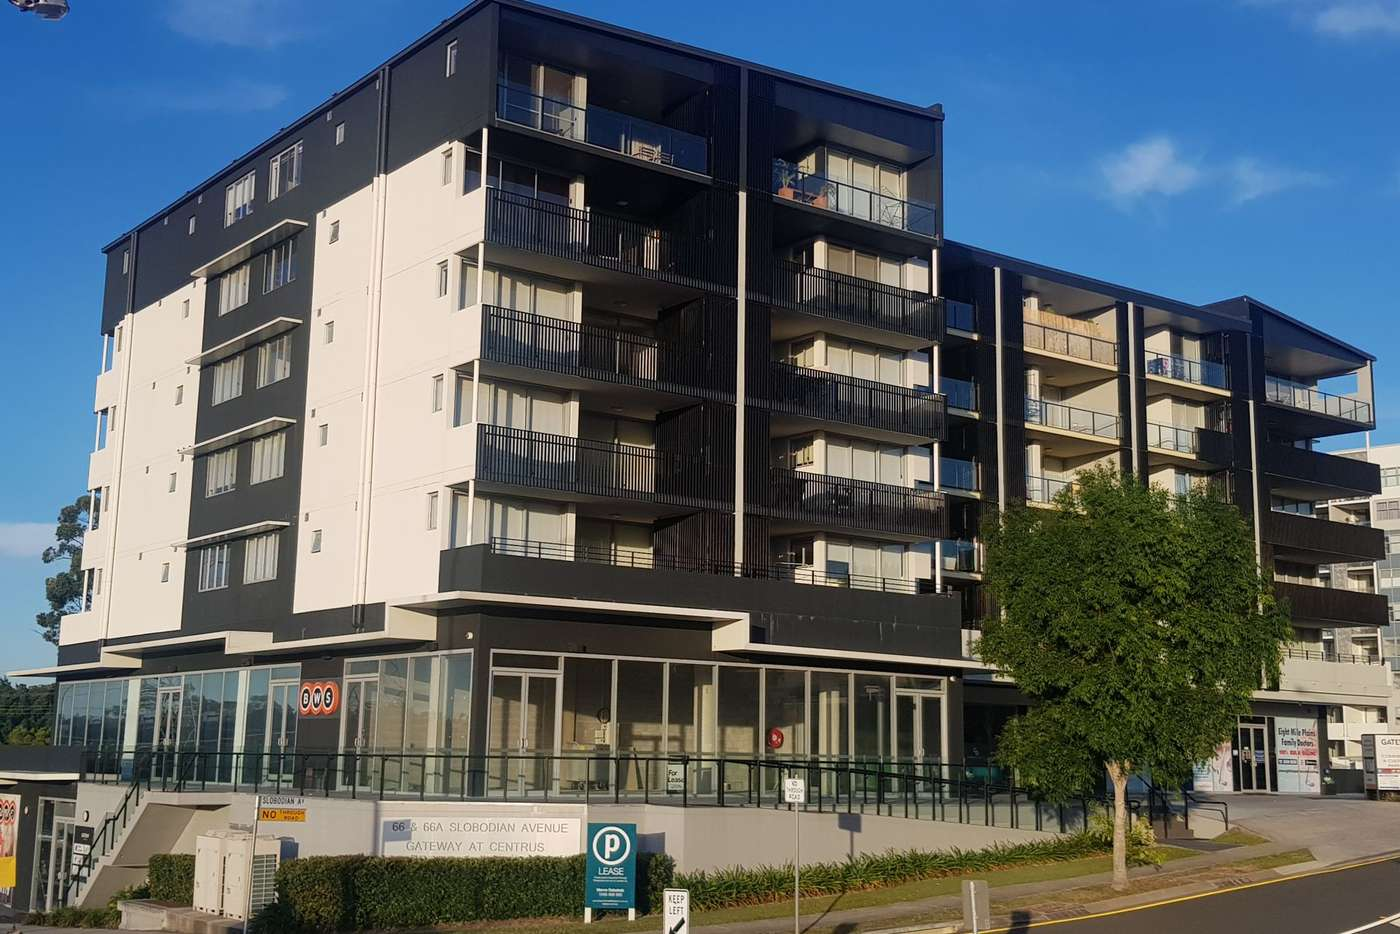 Main view of Homely apartment listing, 66 Slobodian Avenue, Eight Mile Plains QLD 4113